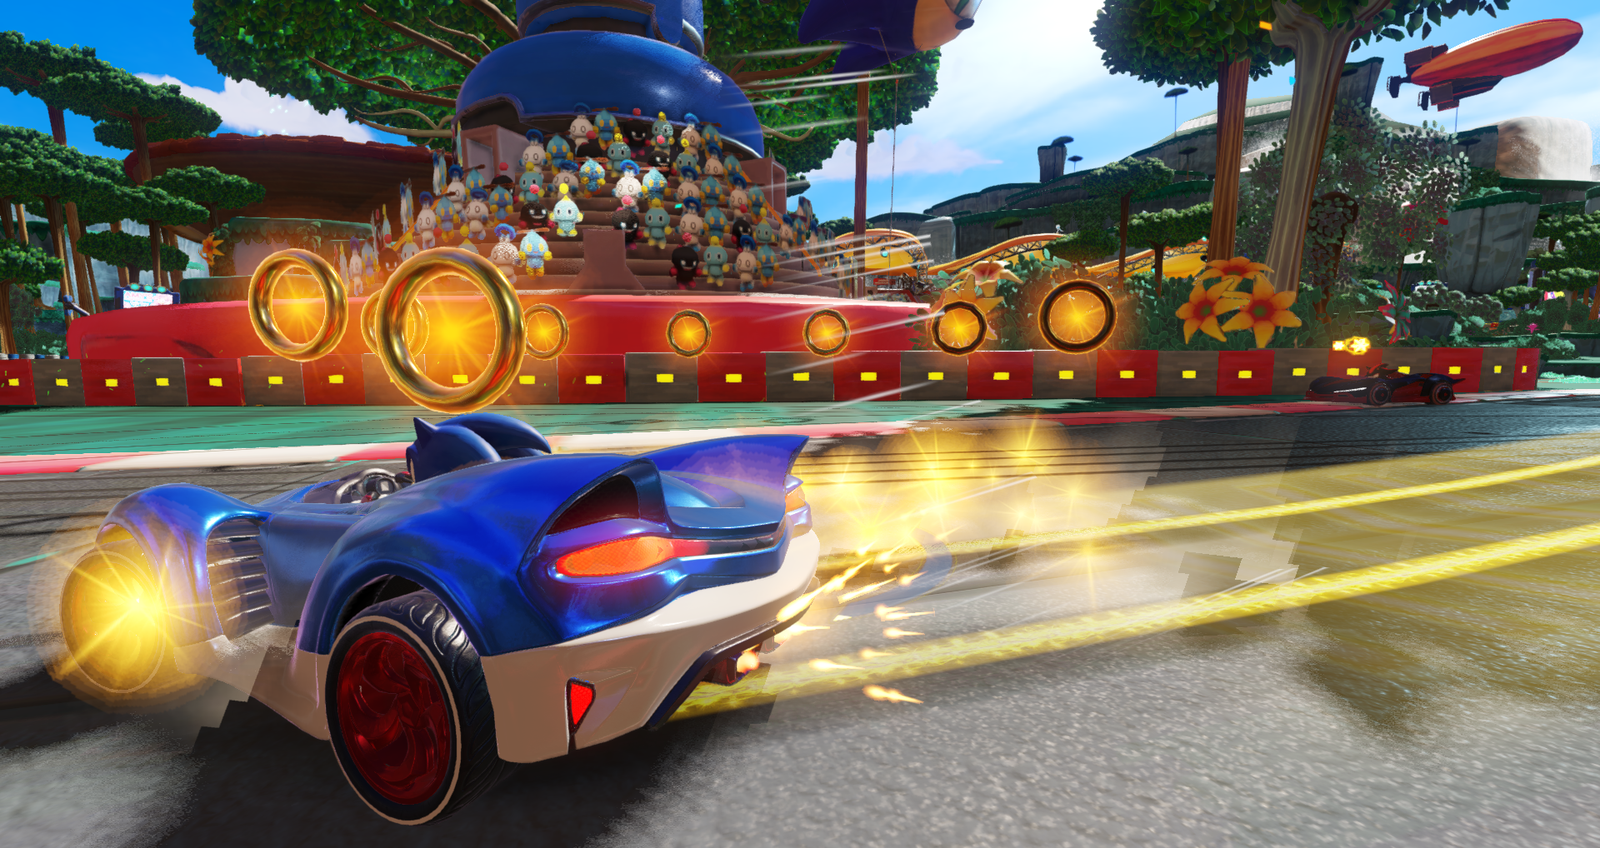 Listen to the Market Street Remix Track for Team Sonic Racing by Jun